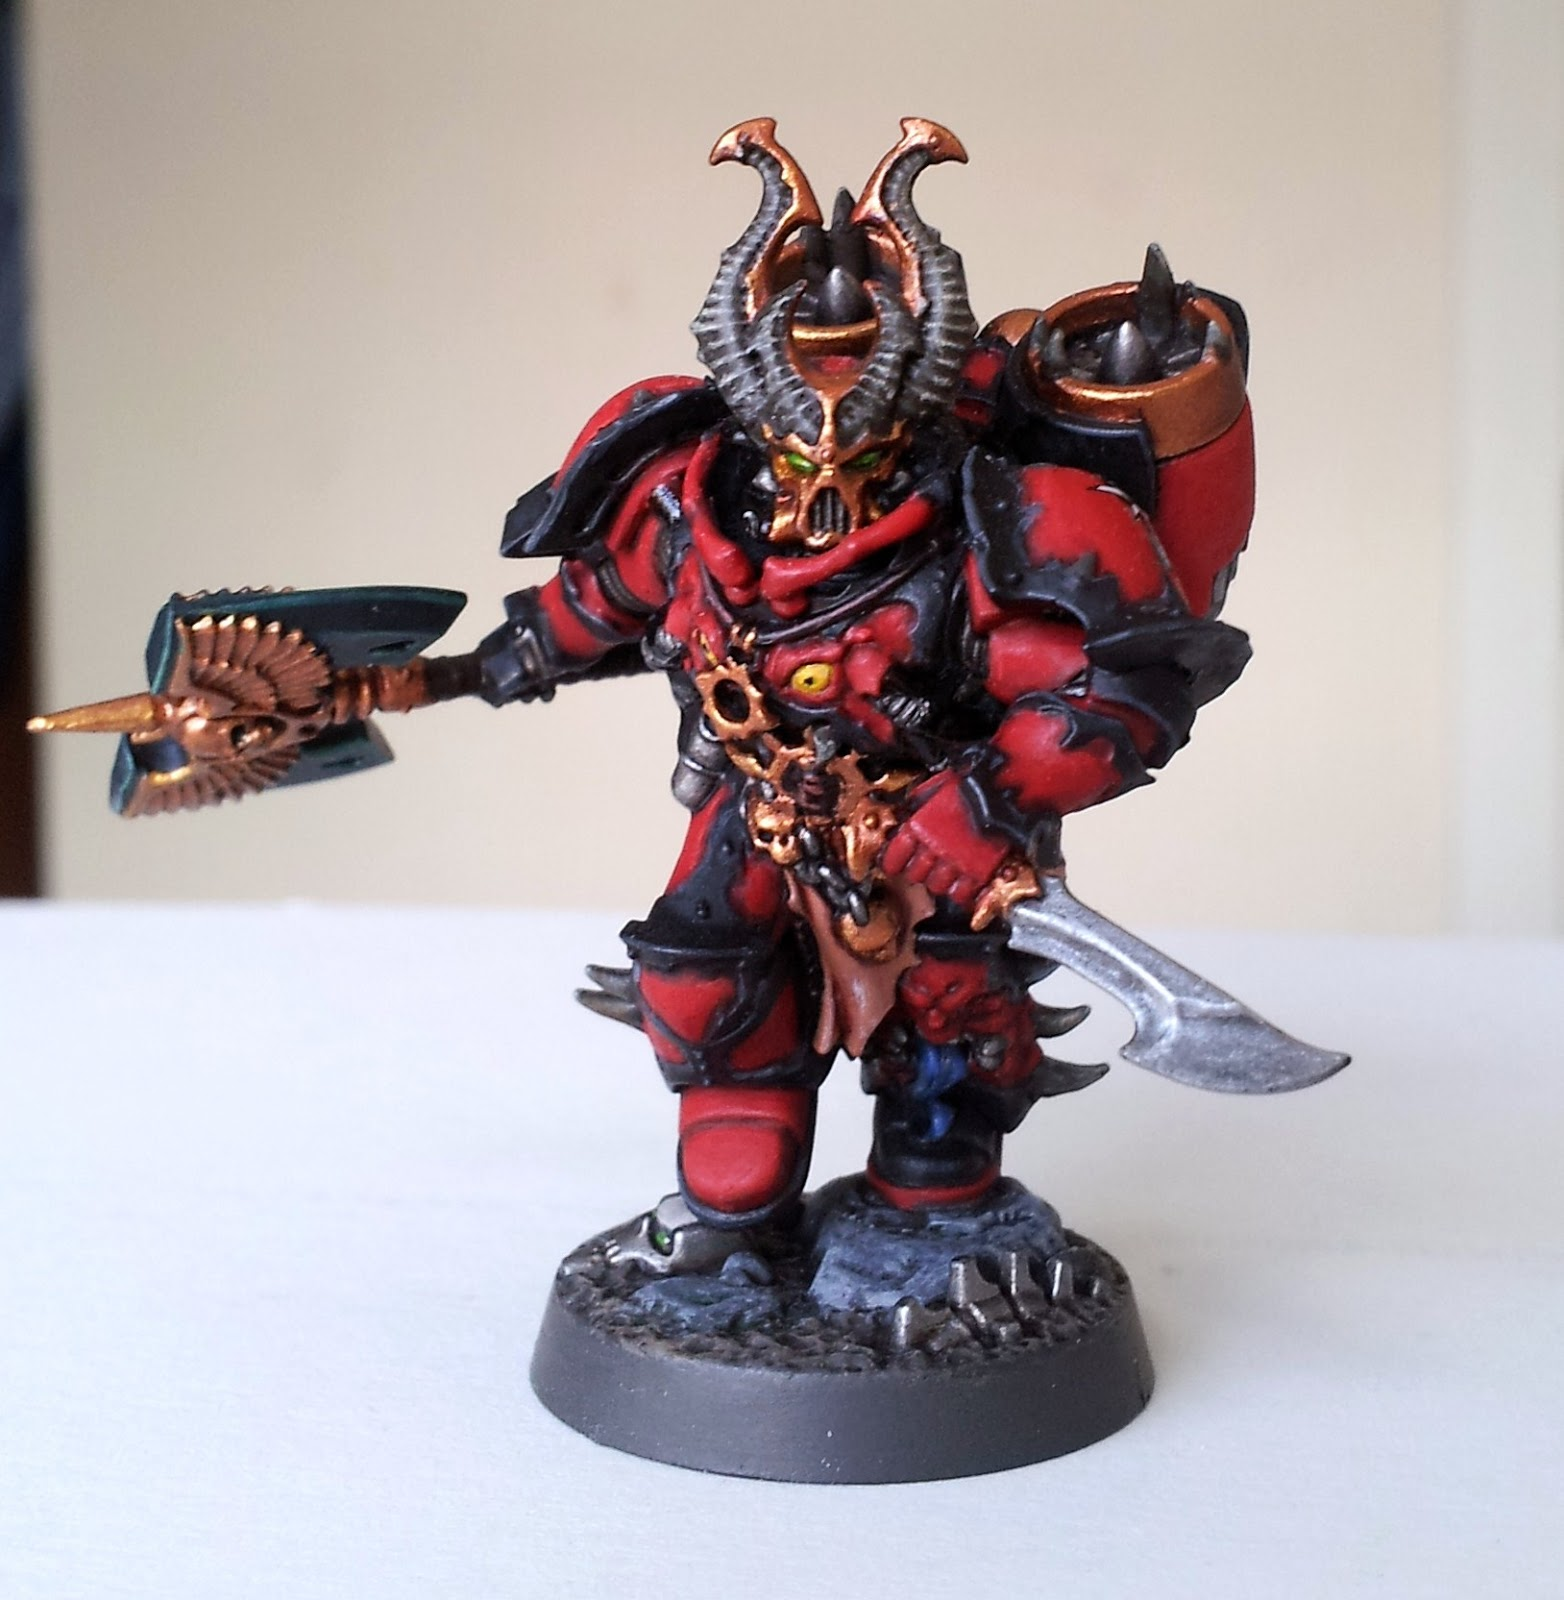 The Pig S Sty Red Corsairs Traitor Astartes Champion